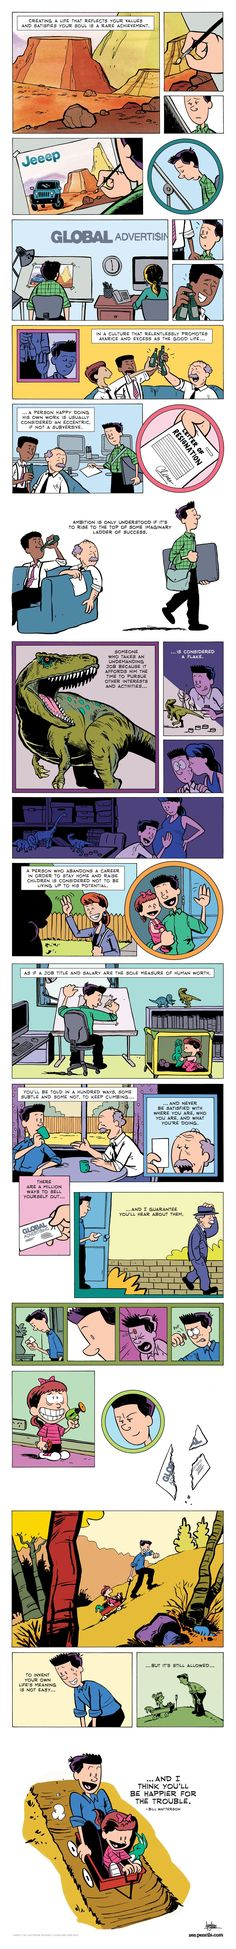 BILL WATTERSON: A cartoonist's advice - Inspiring words from the creator of Calvin and Hobbes, drawn by Zen Pencils Calvin And Hobbes Comics, Life Advice, Good Advice, Career Advice, Career Choices, Advice Quotes, Career Change, Video Love, Guter Rat